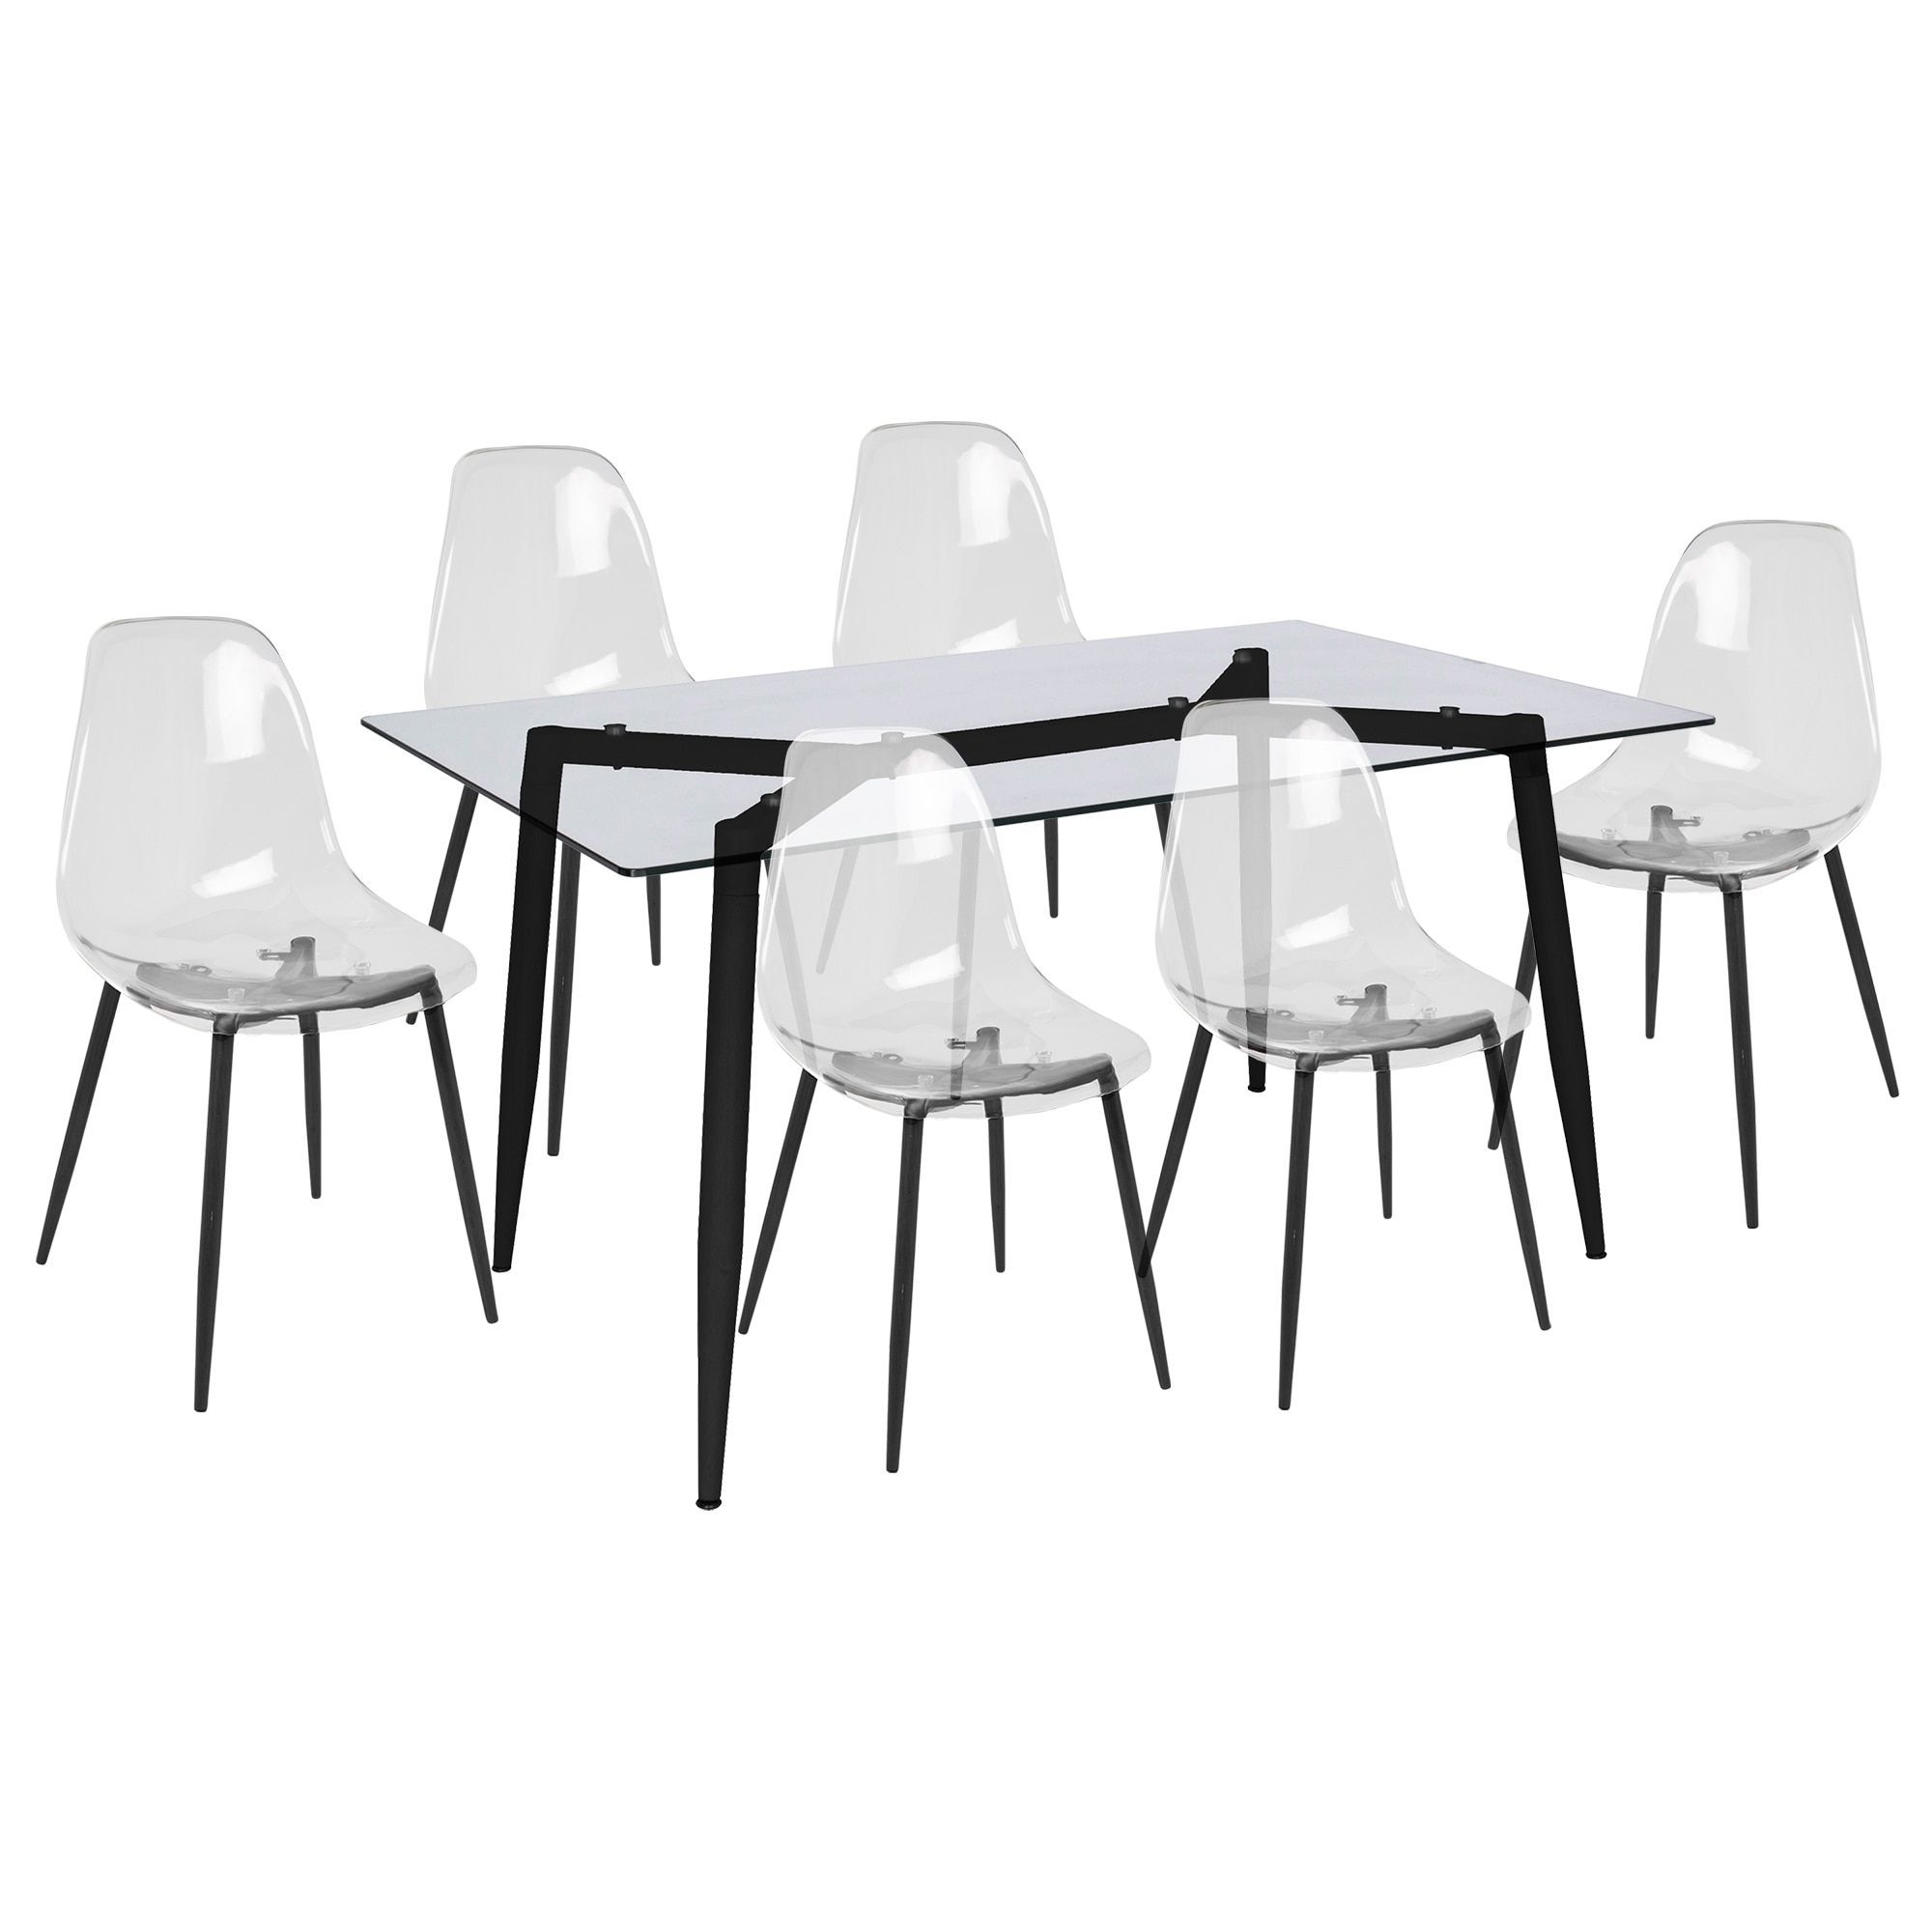 Fabulous Lumisource Clara Metal And Glass Mid Century Modern 7 Piece Ncnpc Chair Design For Home Ncnpcorg